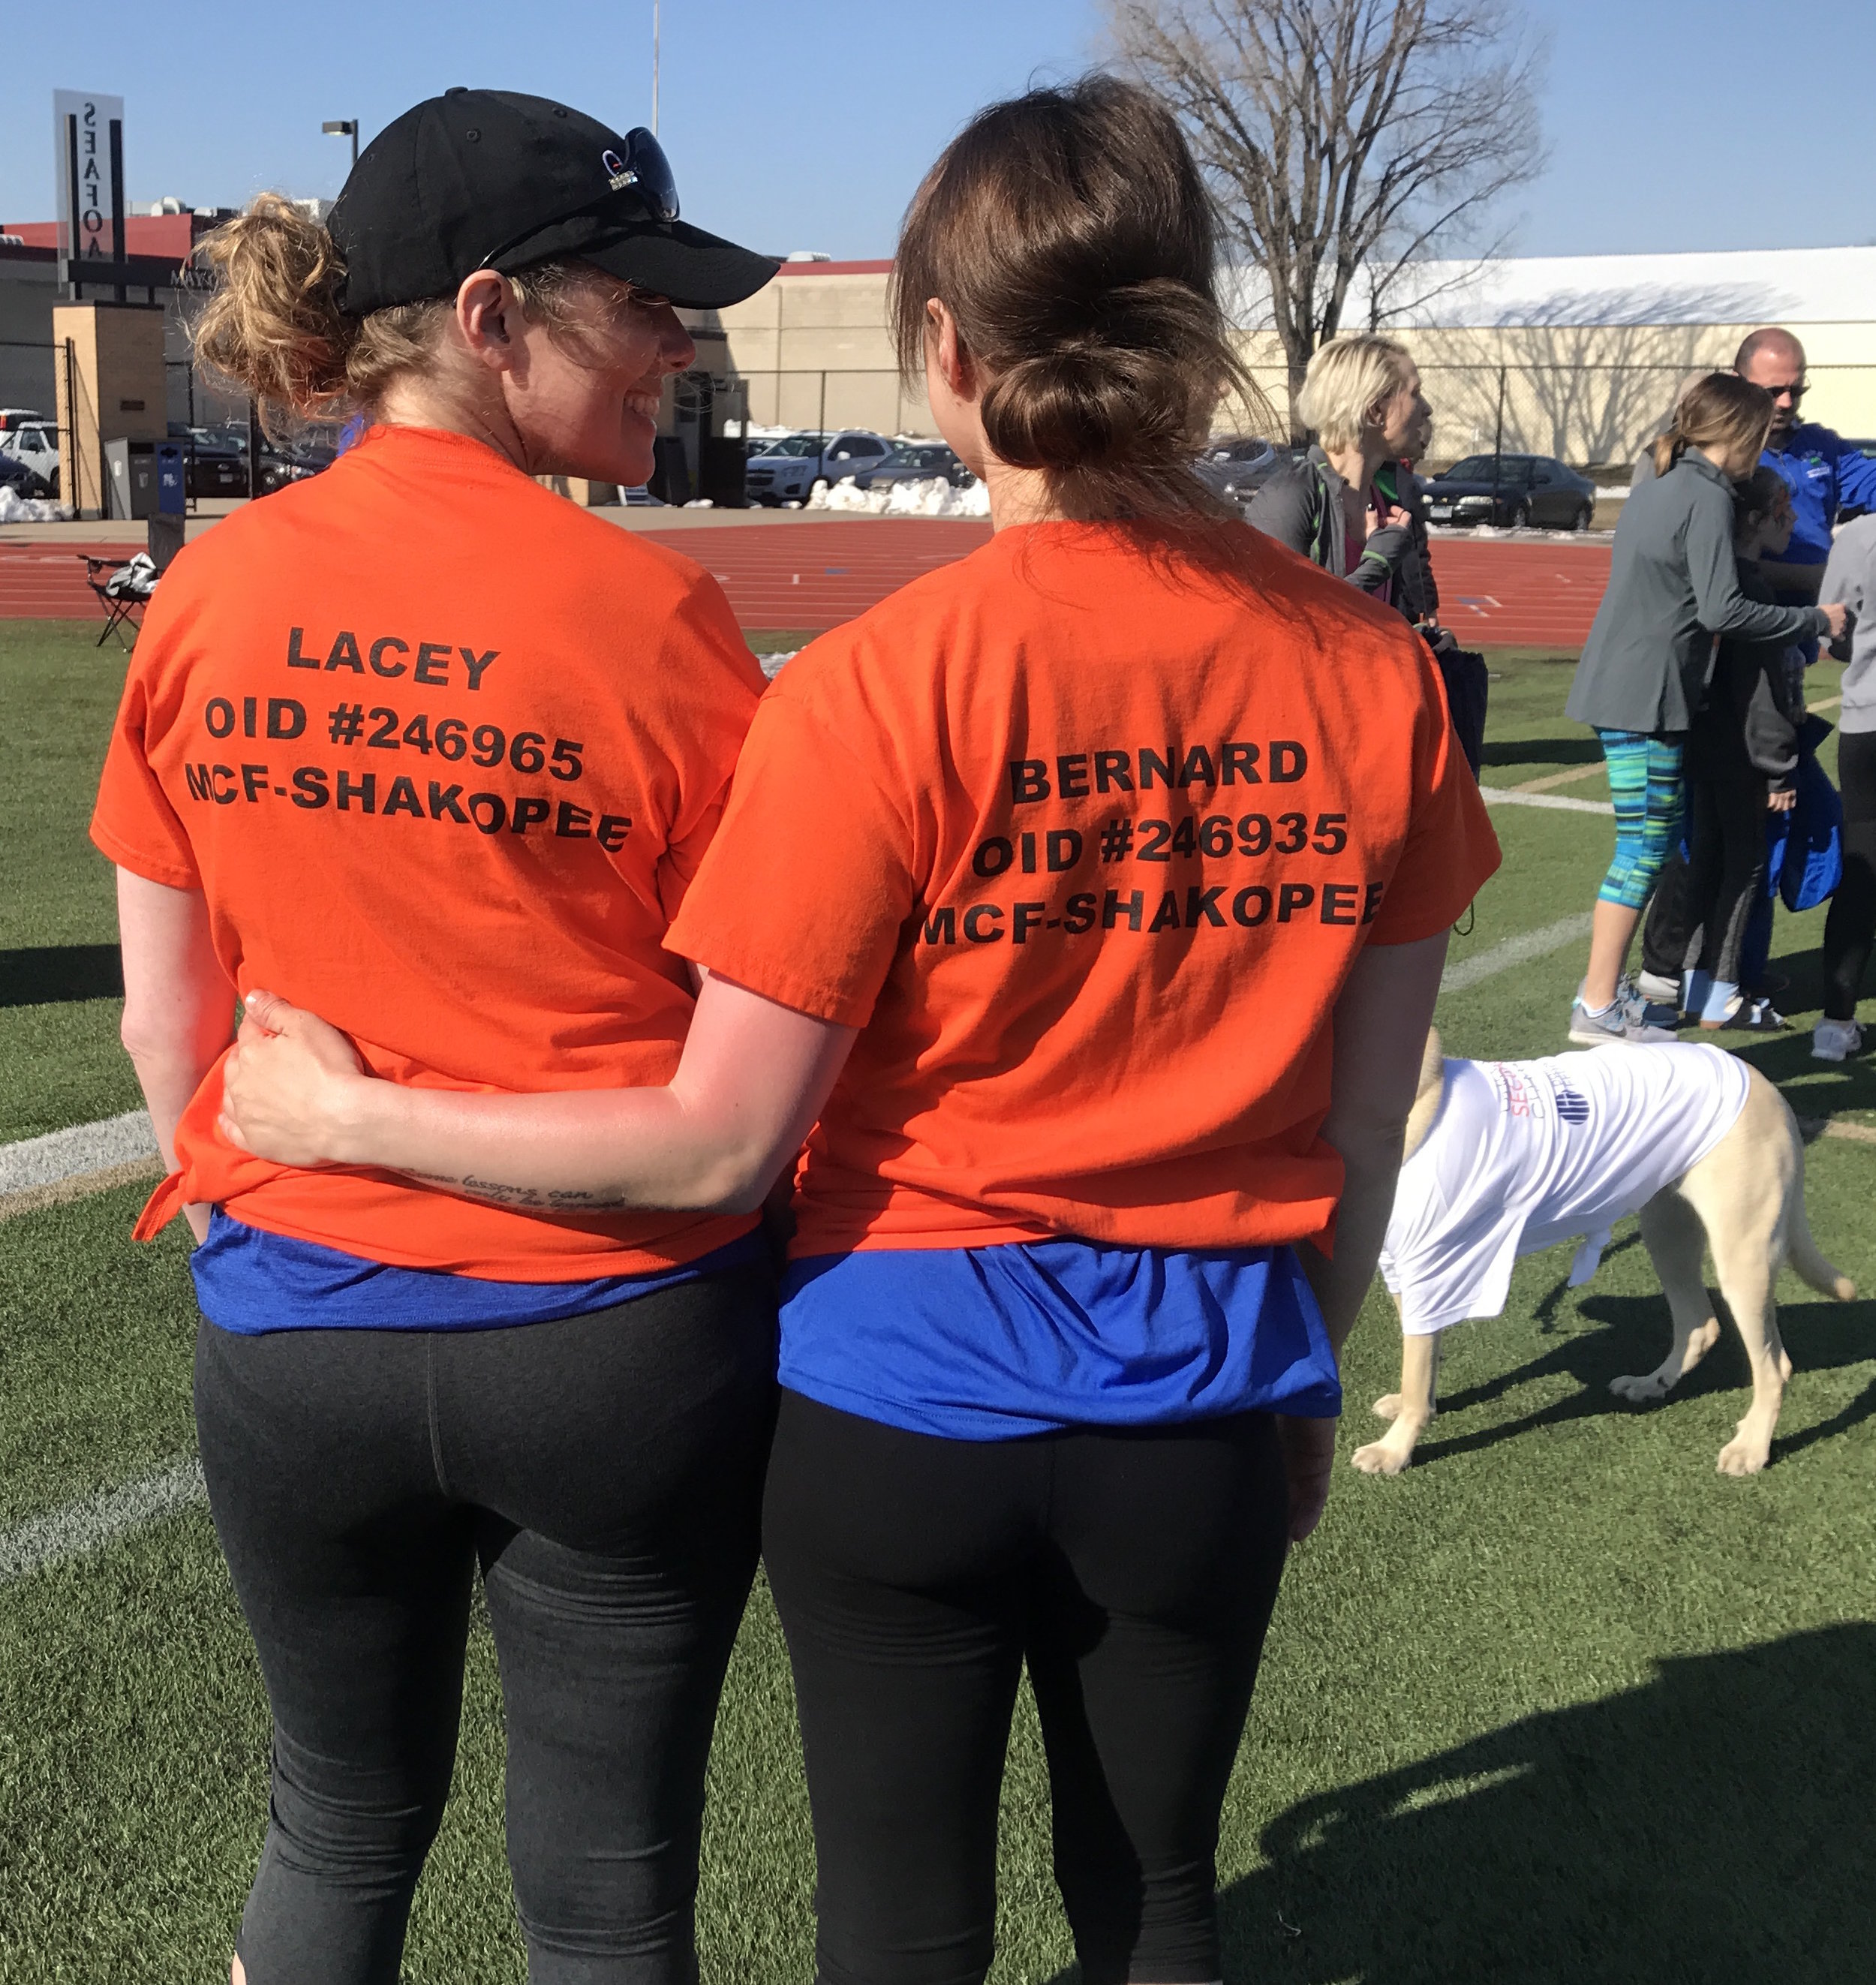 At the Second Chances 5K in April 2018